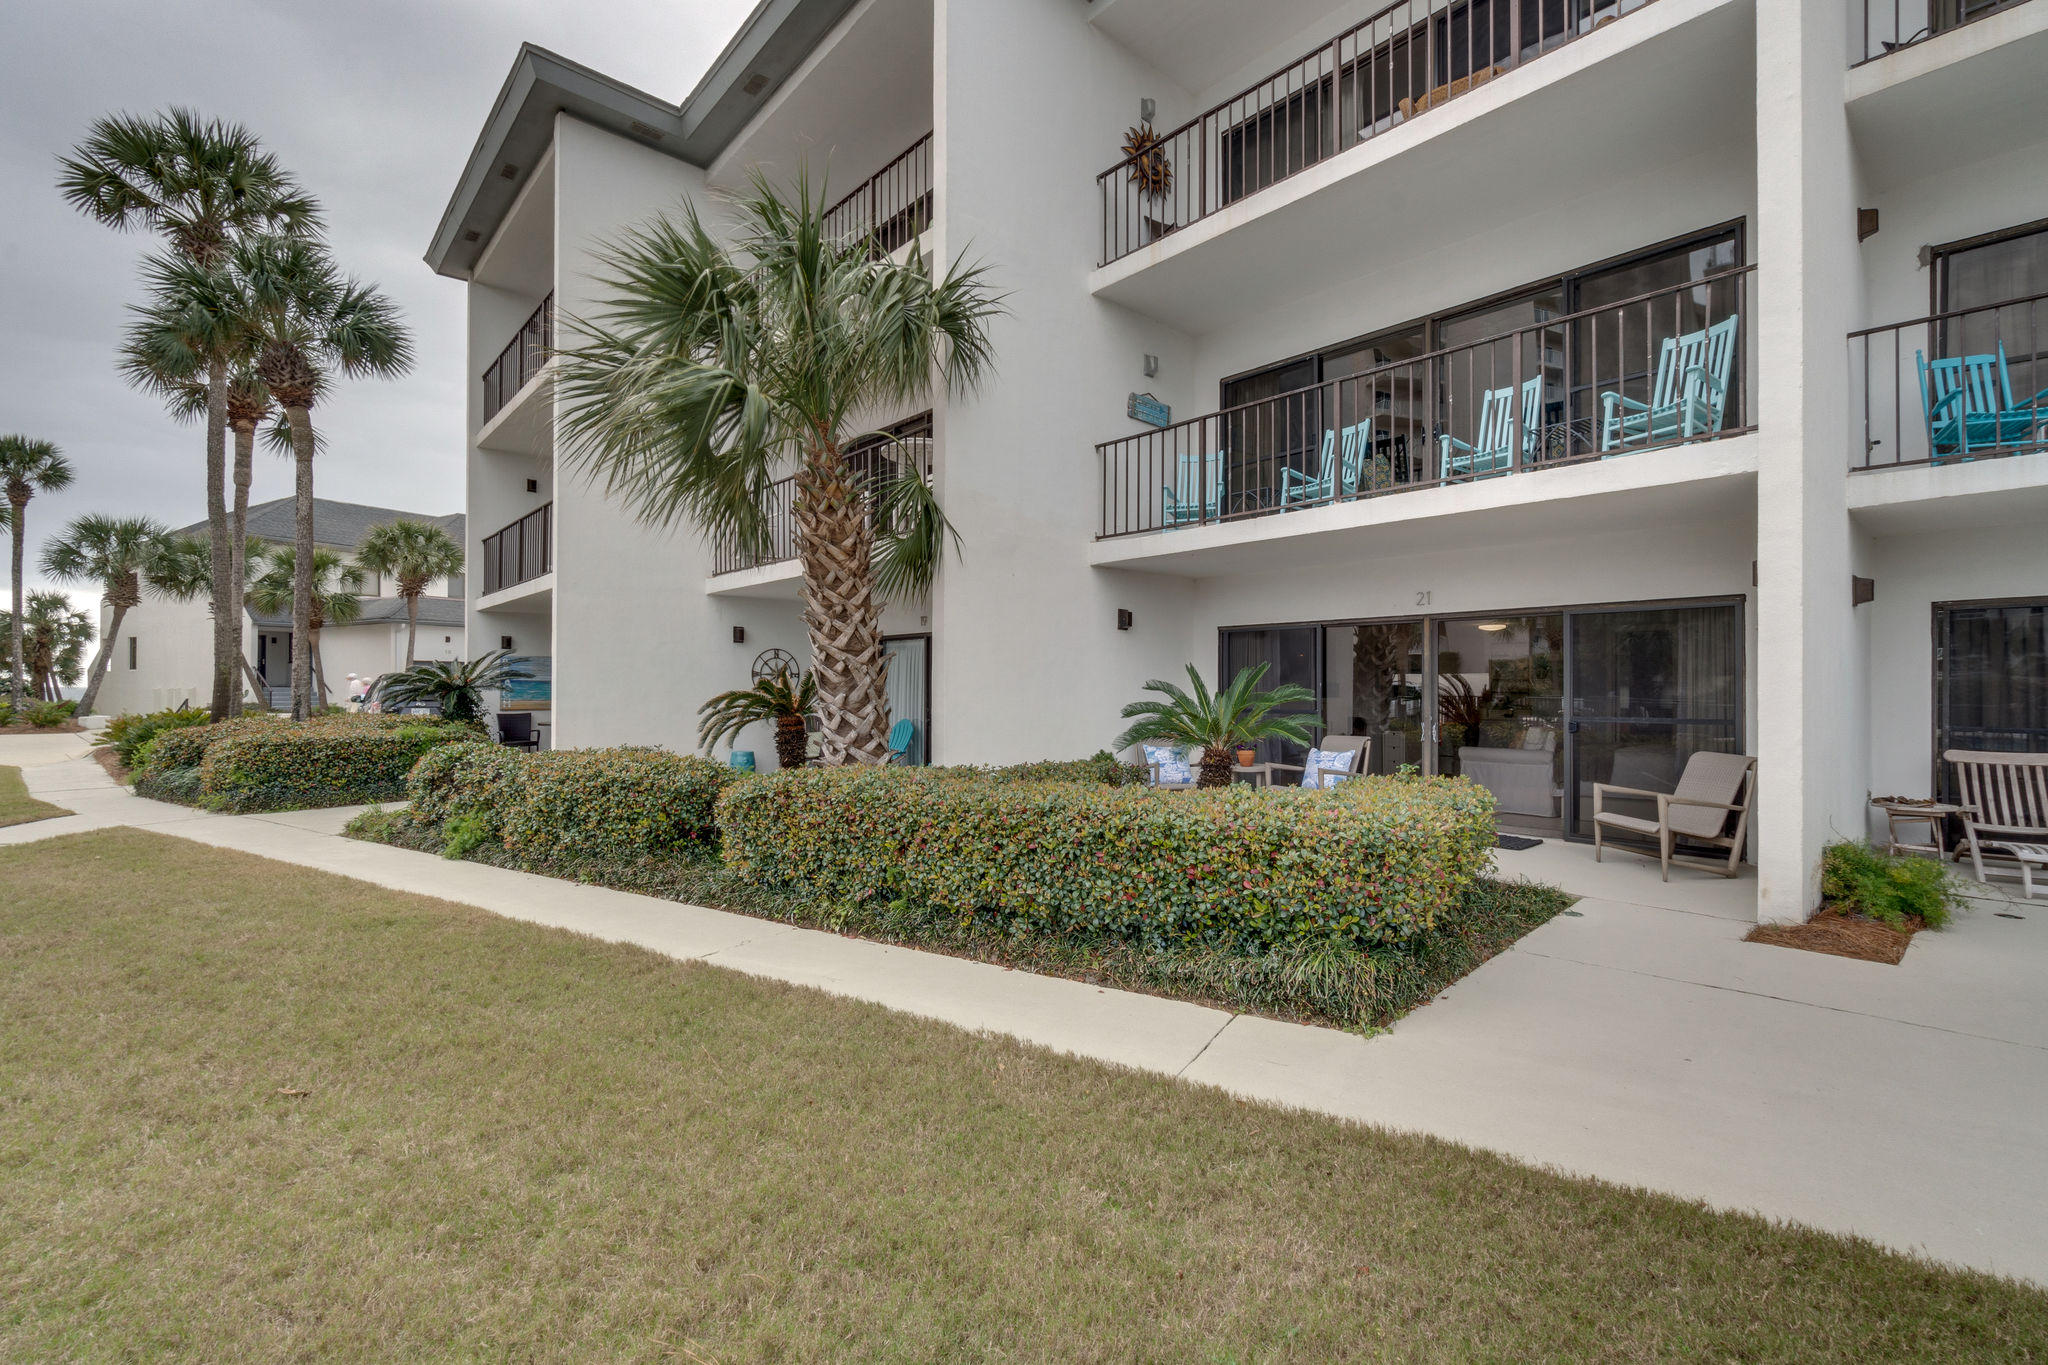 Sweet completely remodeled and furnished studio in the perfect location!  Emerald Hill is a quiet 36 unit condo community in the heart of Seagrove.  Walking distance to Seaside and a short bike ride to WaterColor and Grayton.  Enjoy a dip steps from your front door in the community pool.  Private gated beach access within 100 yards.  All new kitchen appliances and washer/dryer.  Quartz kitchen countertops with upgraded cabinetry.  Upgraded bath with spacious, tiled walk in shower.  Queen size bed flanked with storage cabinets and a twin Murphy bed allow plenty of space for 3 comfortably.